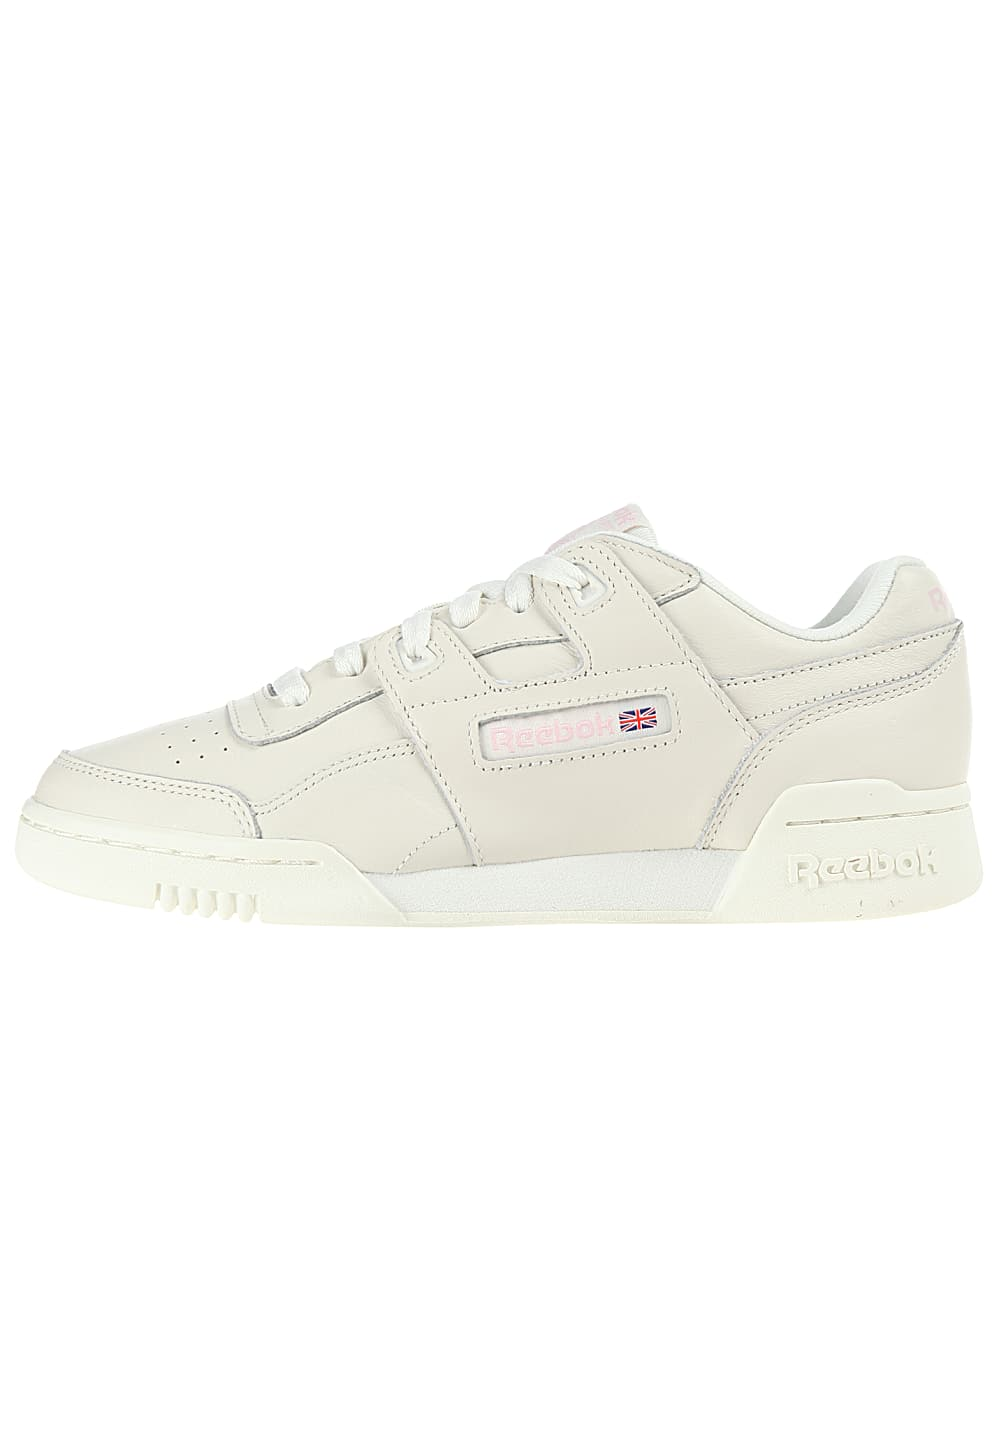 Reebok Workout Lo Plus Baskets pour Femme Beige